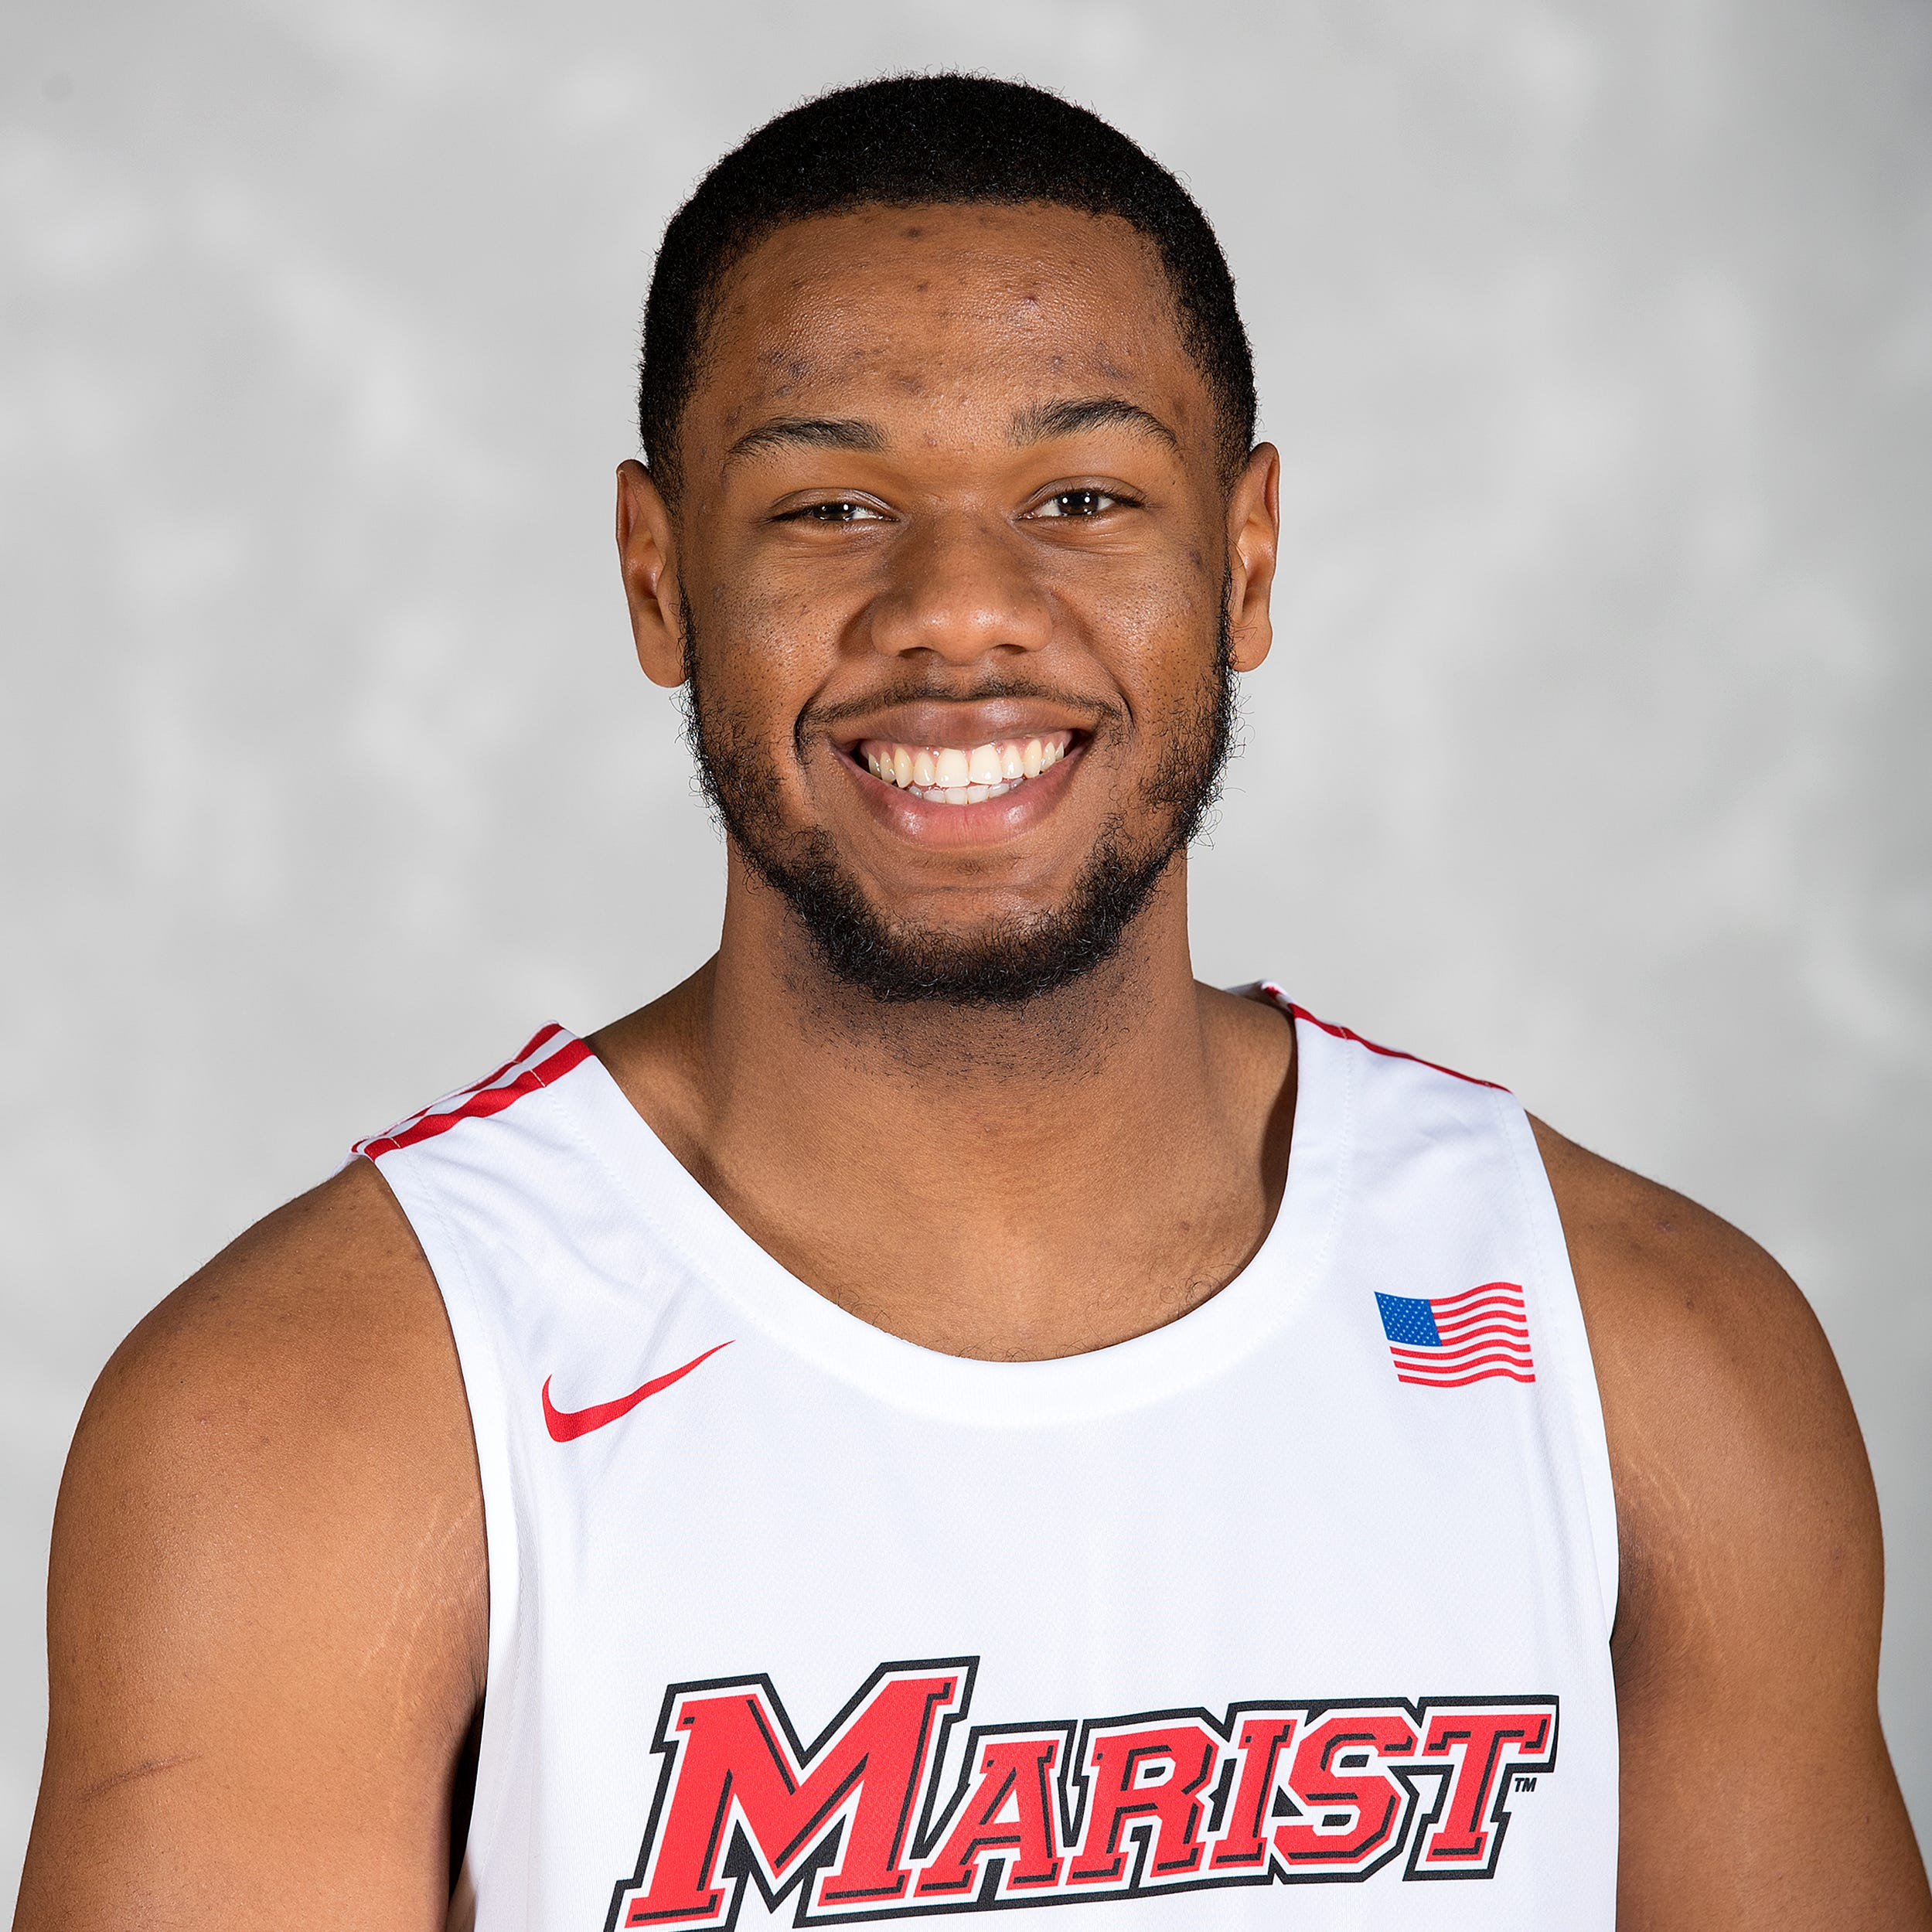 Marist men look to pull even after loss to Colgate